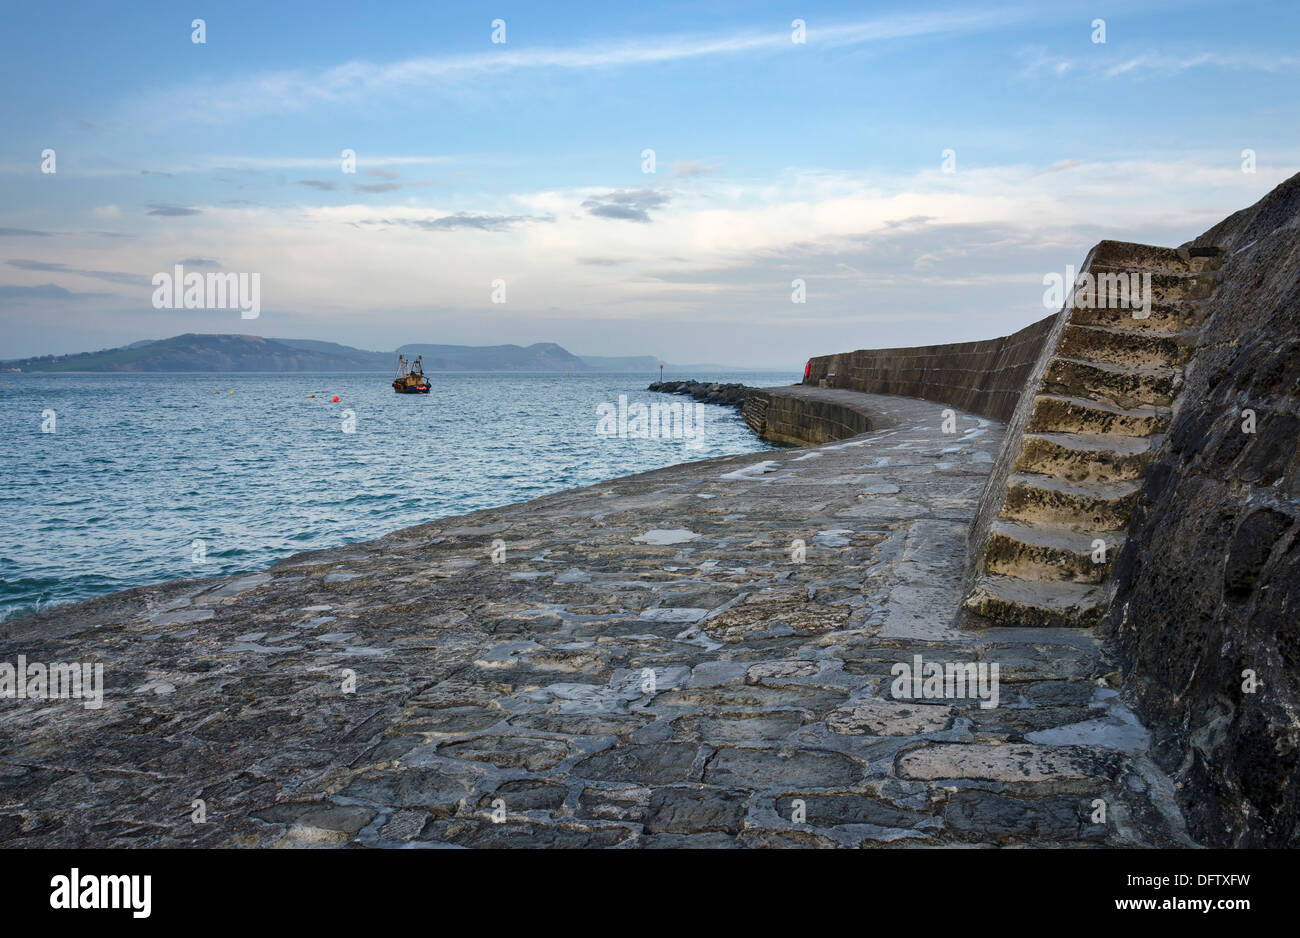 A winters day at The Cobb part of the historic harbour of Lyme Regis on the Jurassic Coast in Dorset - Stock Image